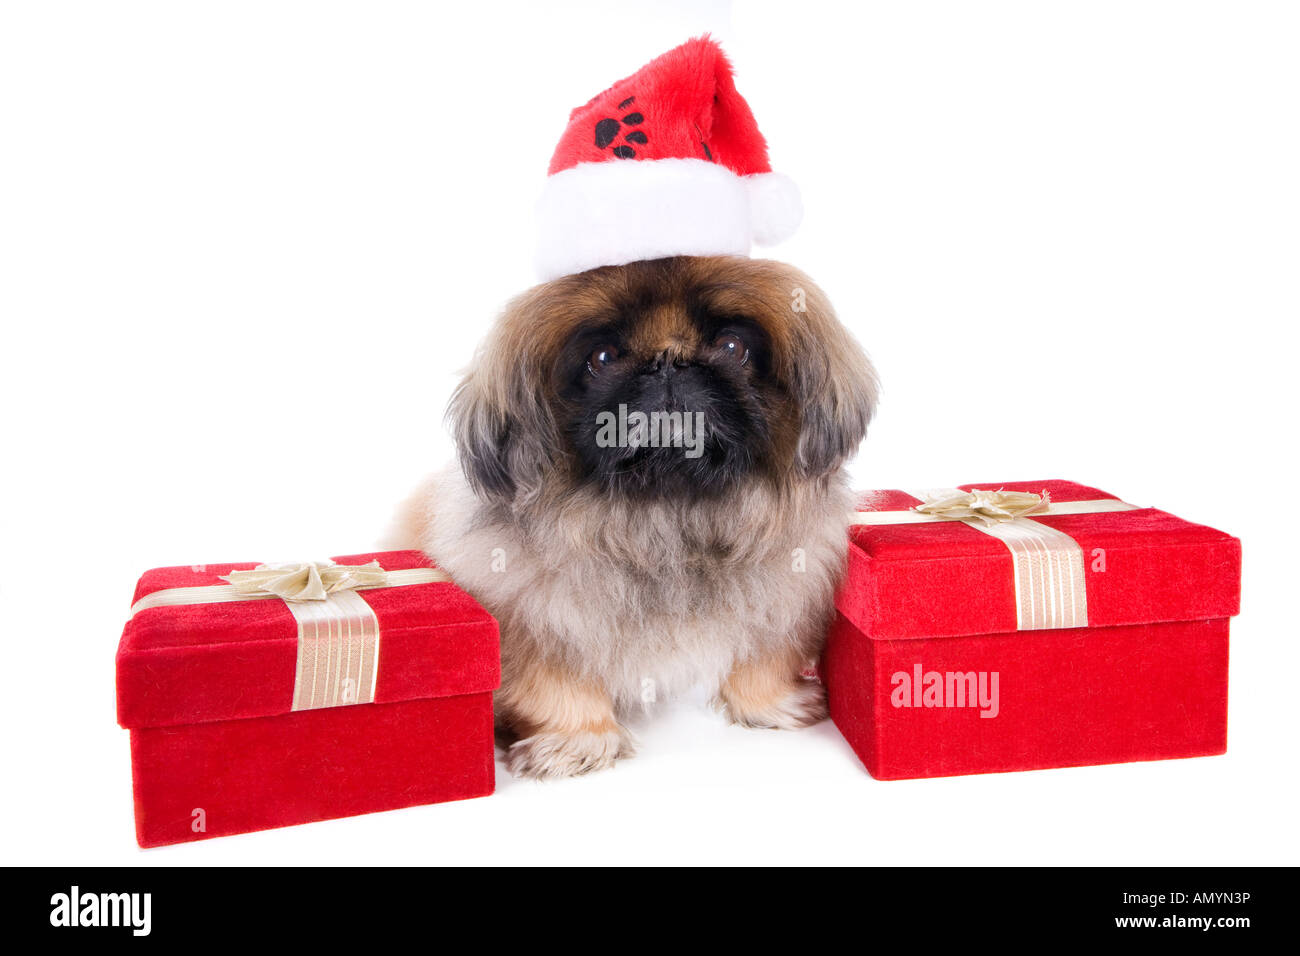 e8d0767ca5c5 Brown Pekingese dog dressed for Christmas in hat with red velvet gift box  isolated on white